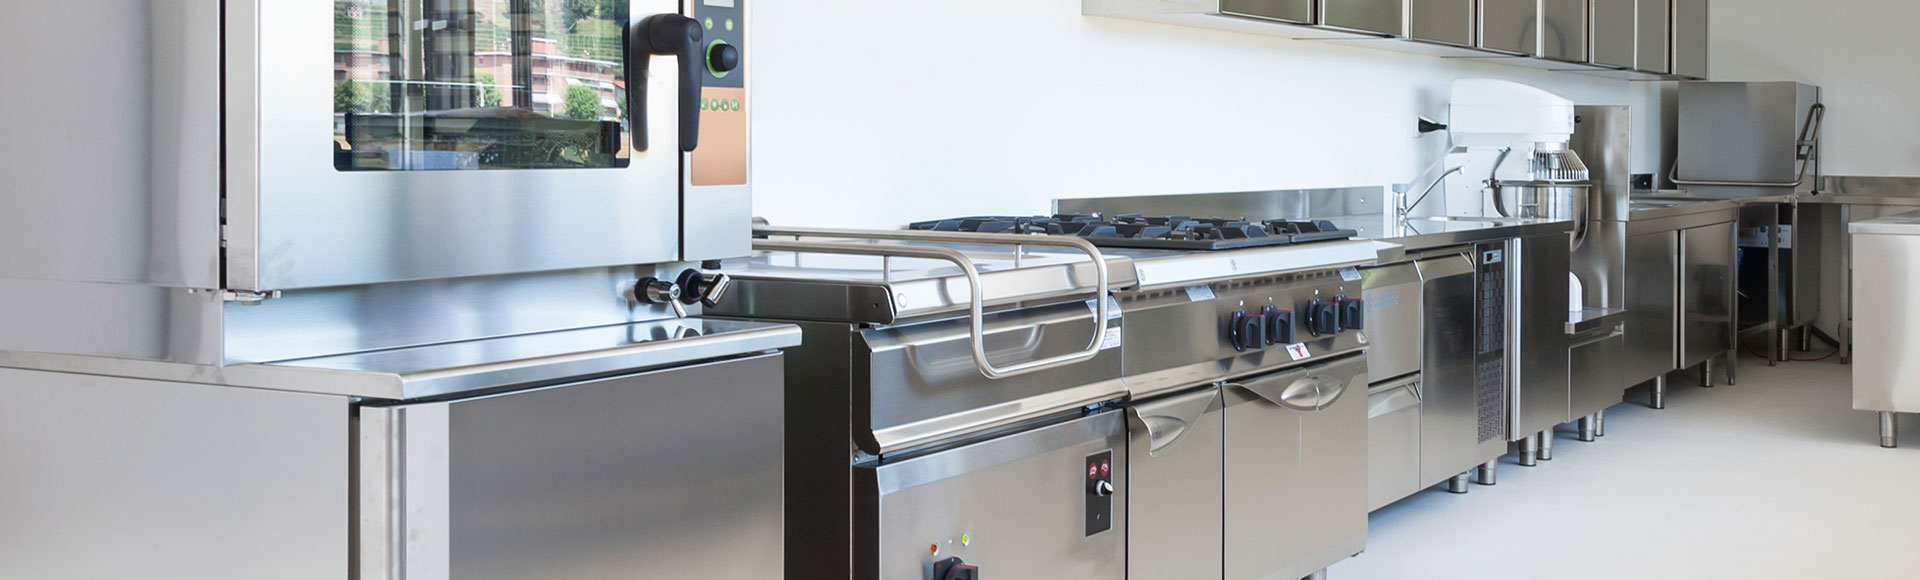 Tips For Maintaining Your Commercial Kitchen Appliances